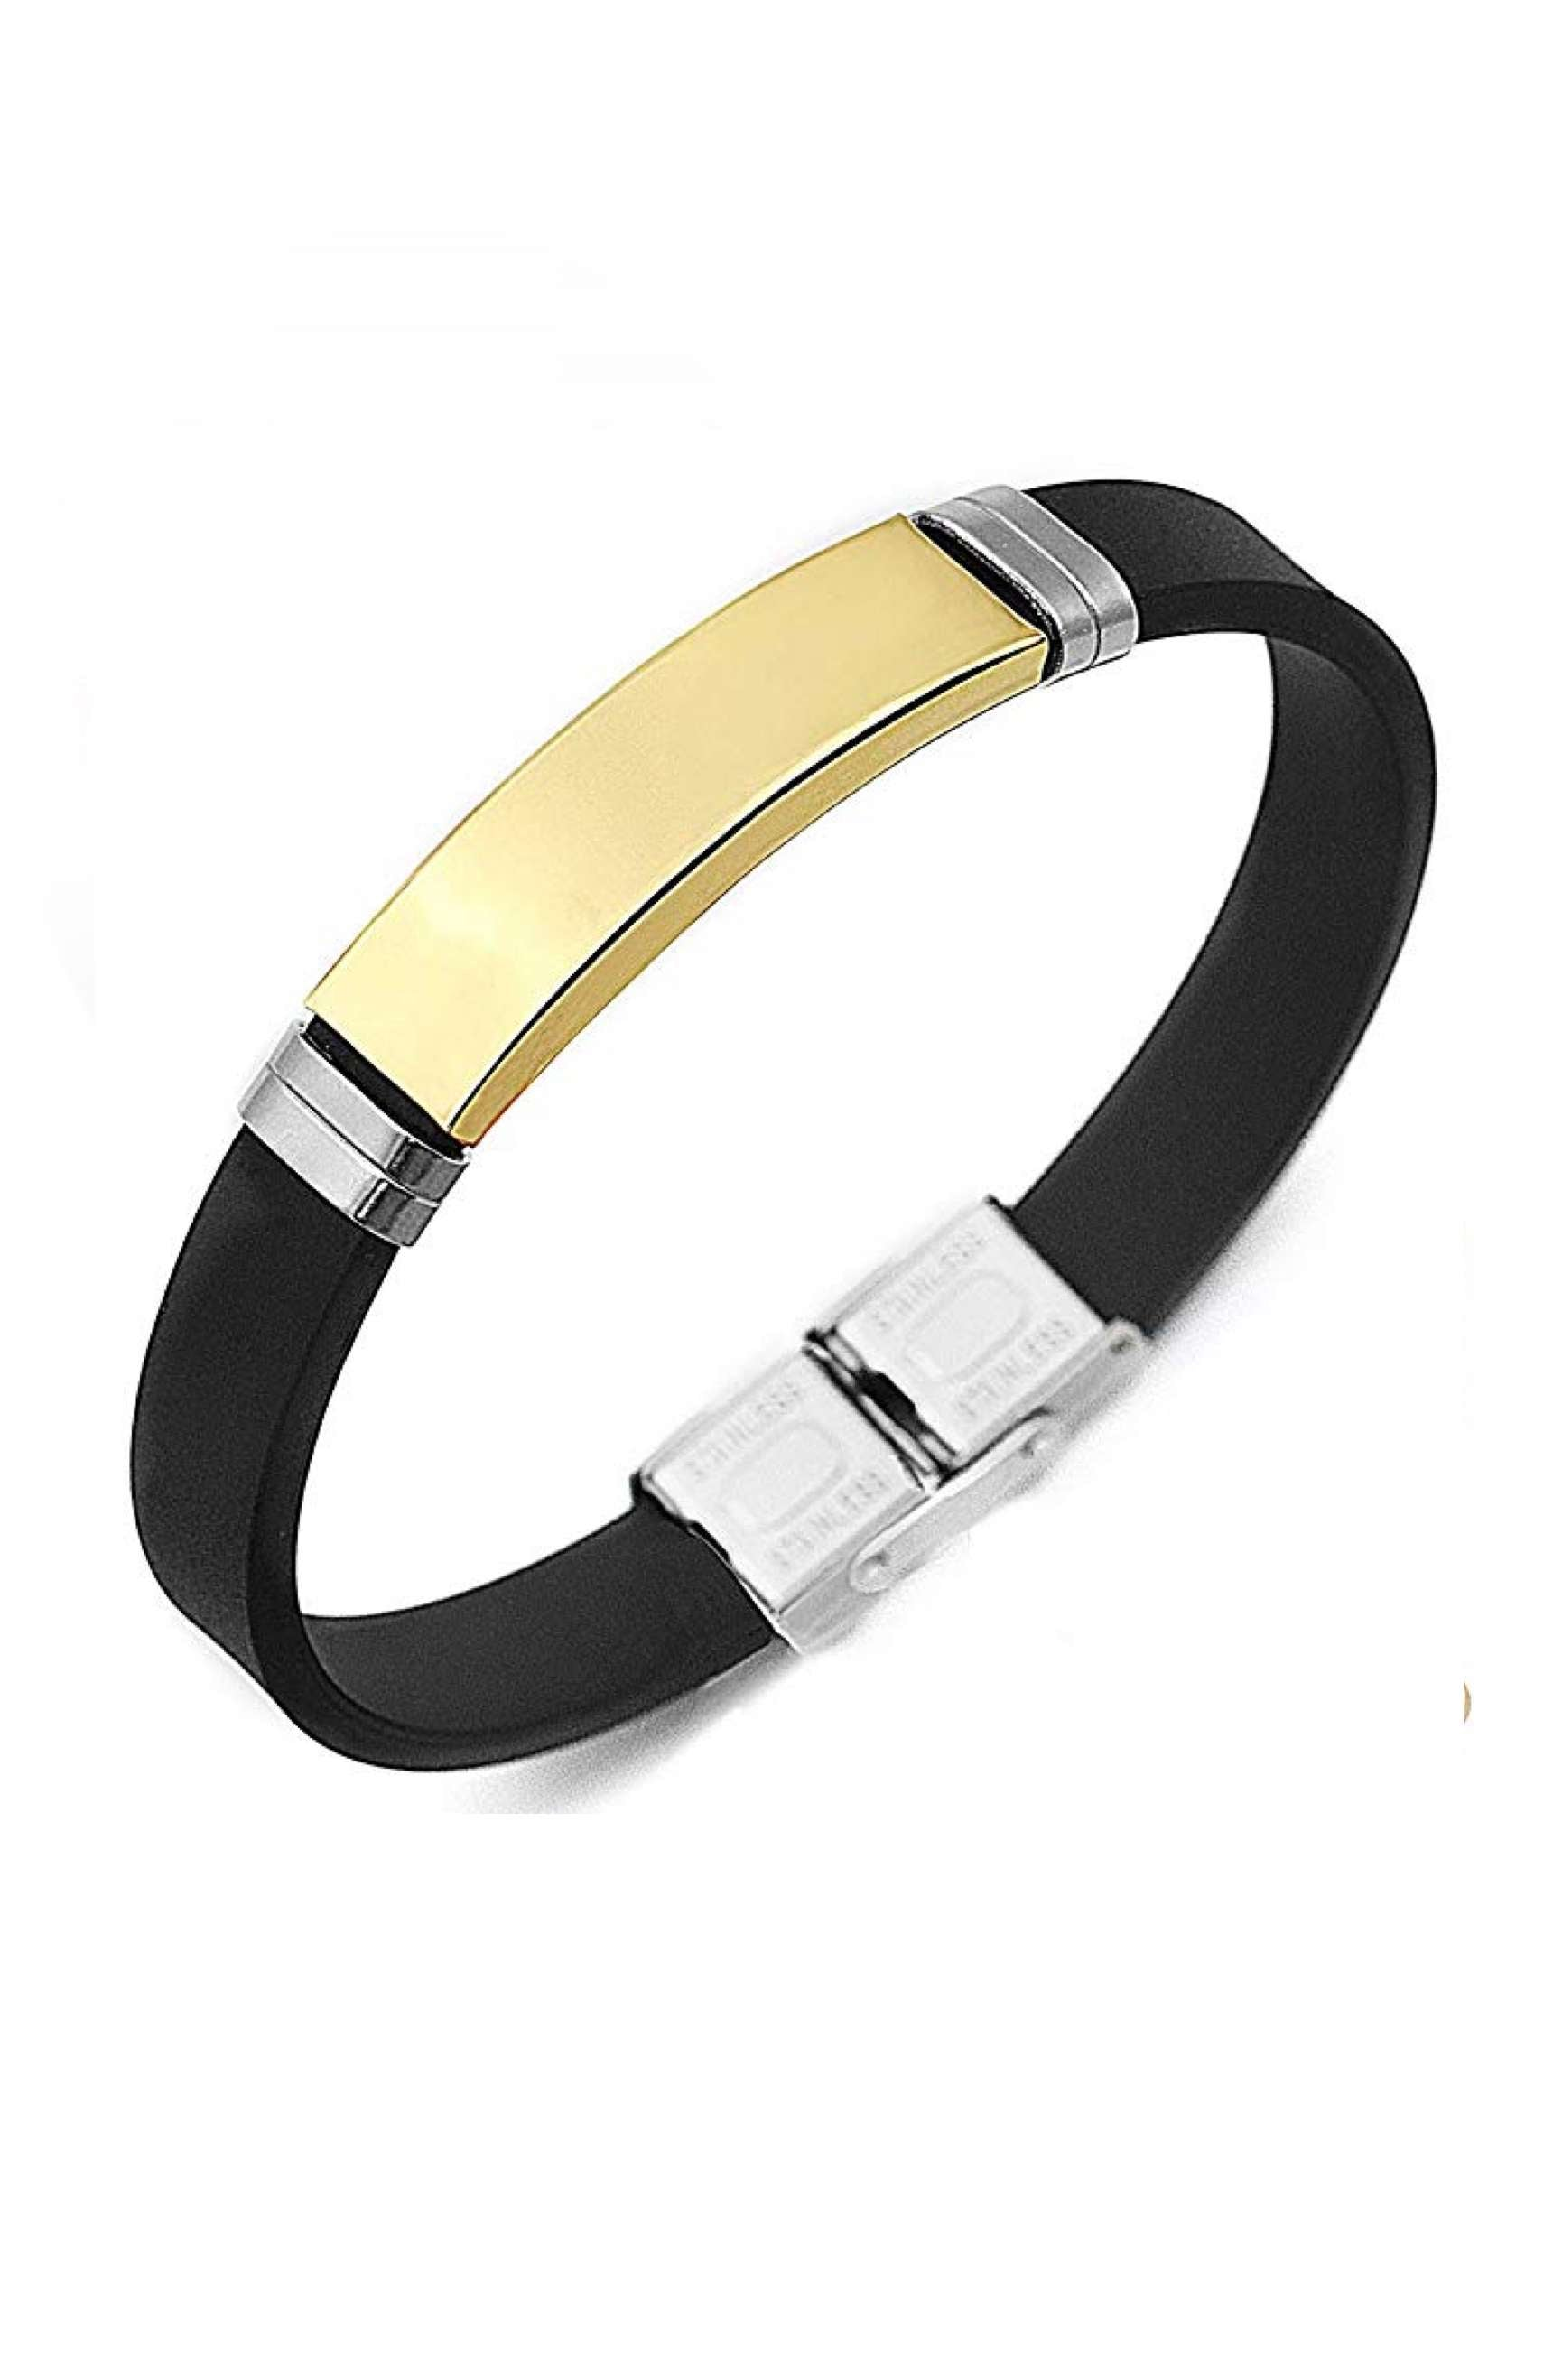 18K Gold & Silver Black Silicone ID Bracelet